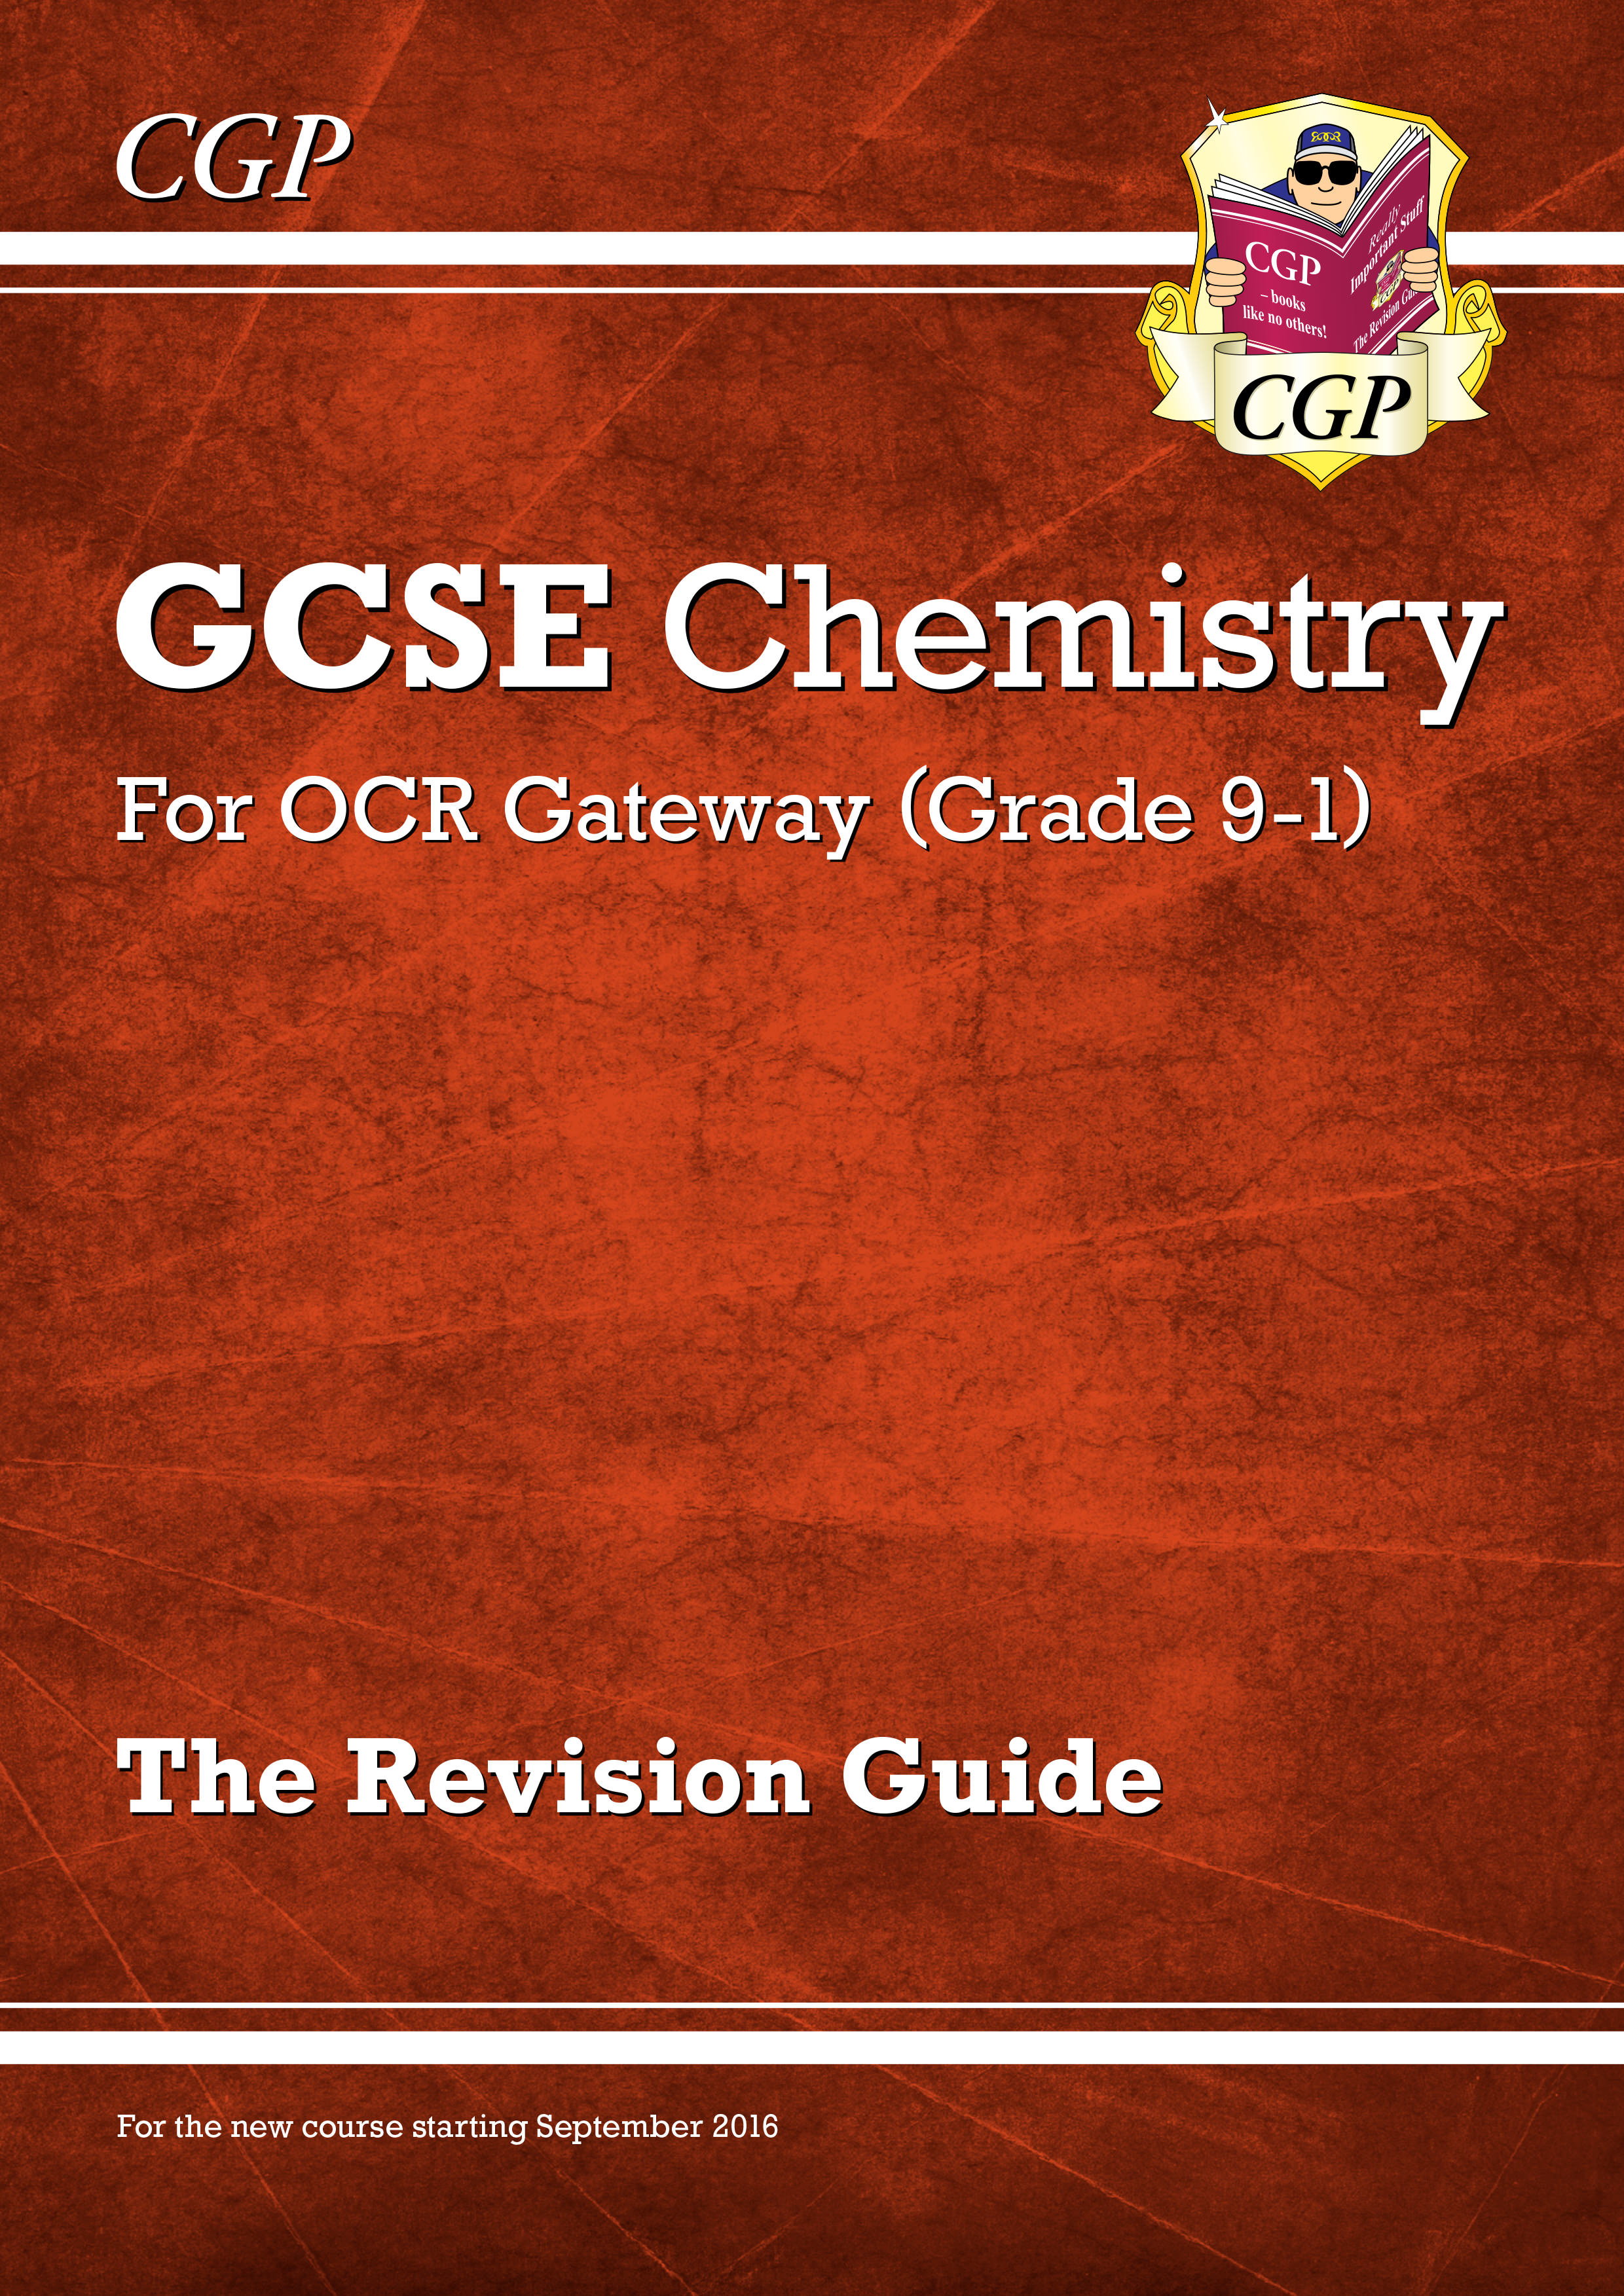 CRR45DK - New Grade 9-1 GCSE Chemistry: OCR Gateway Revision Guide